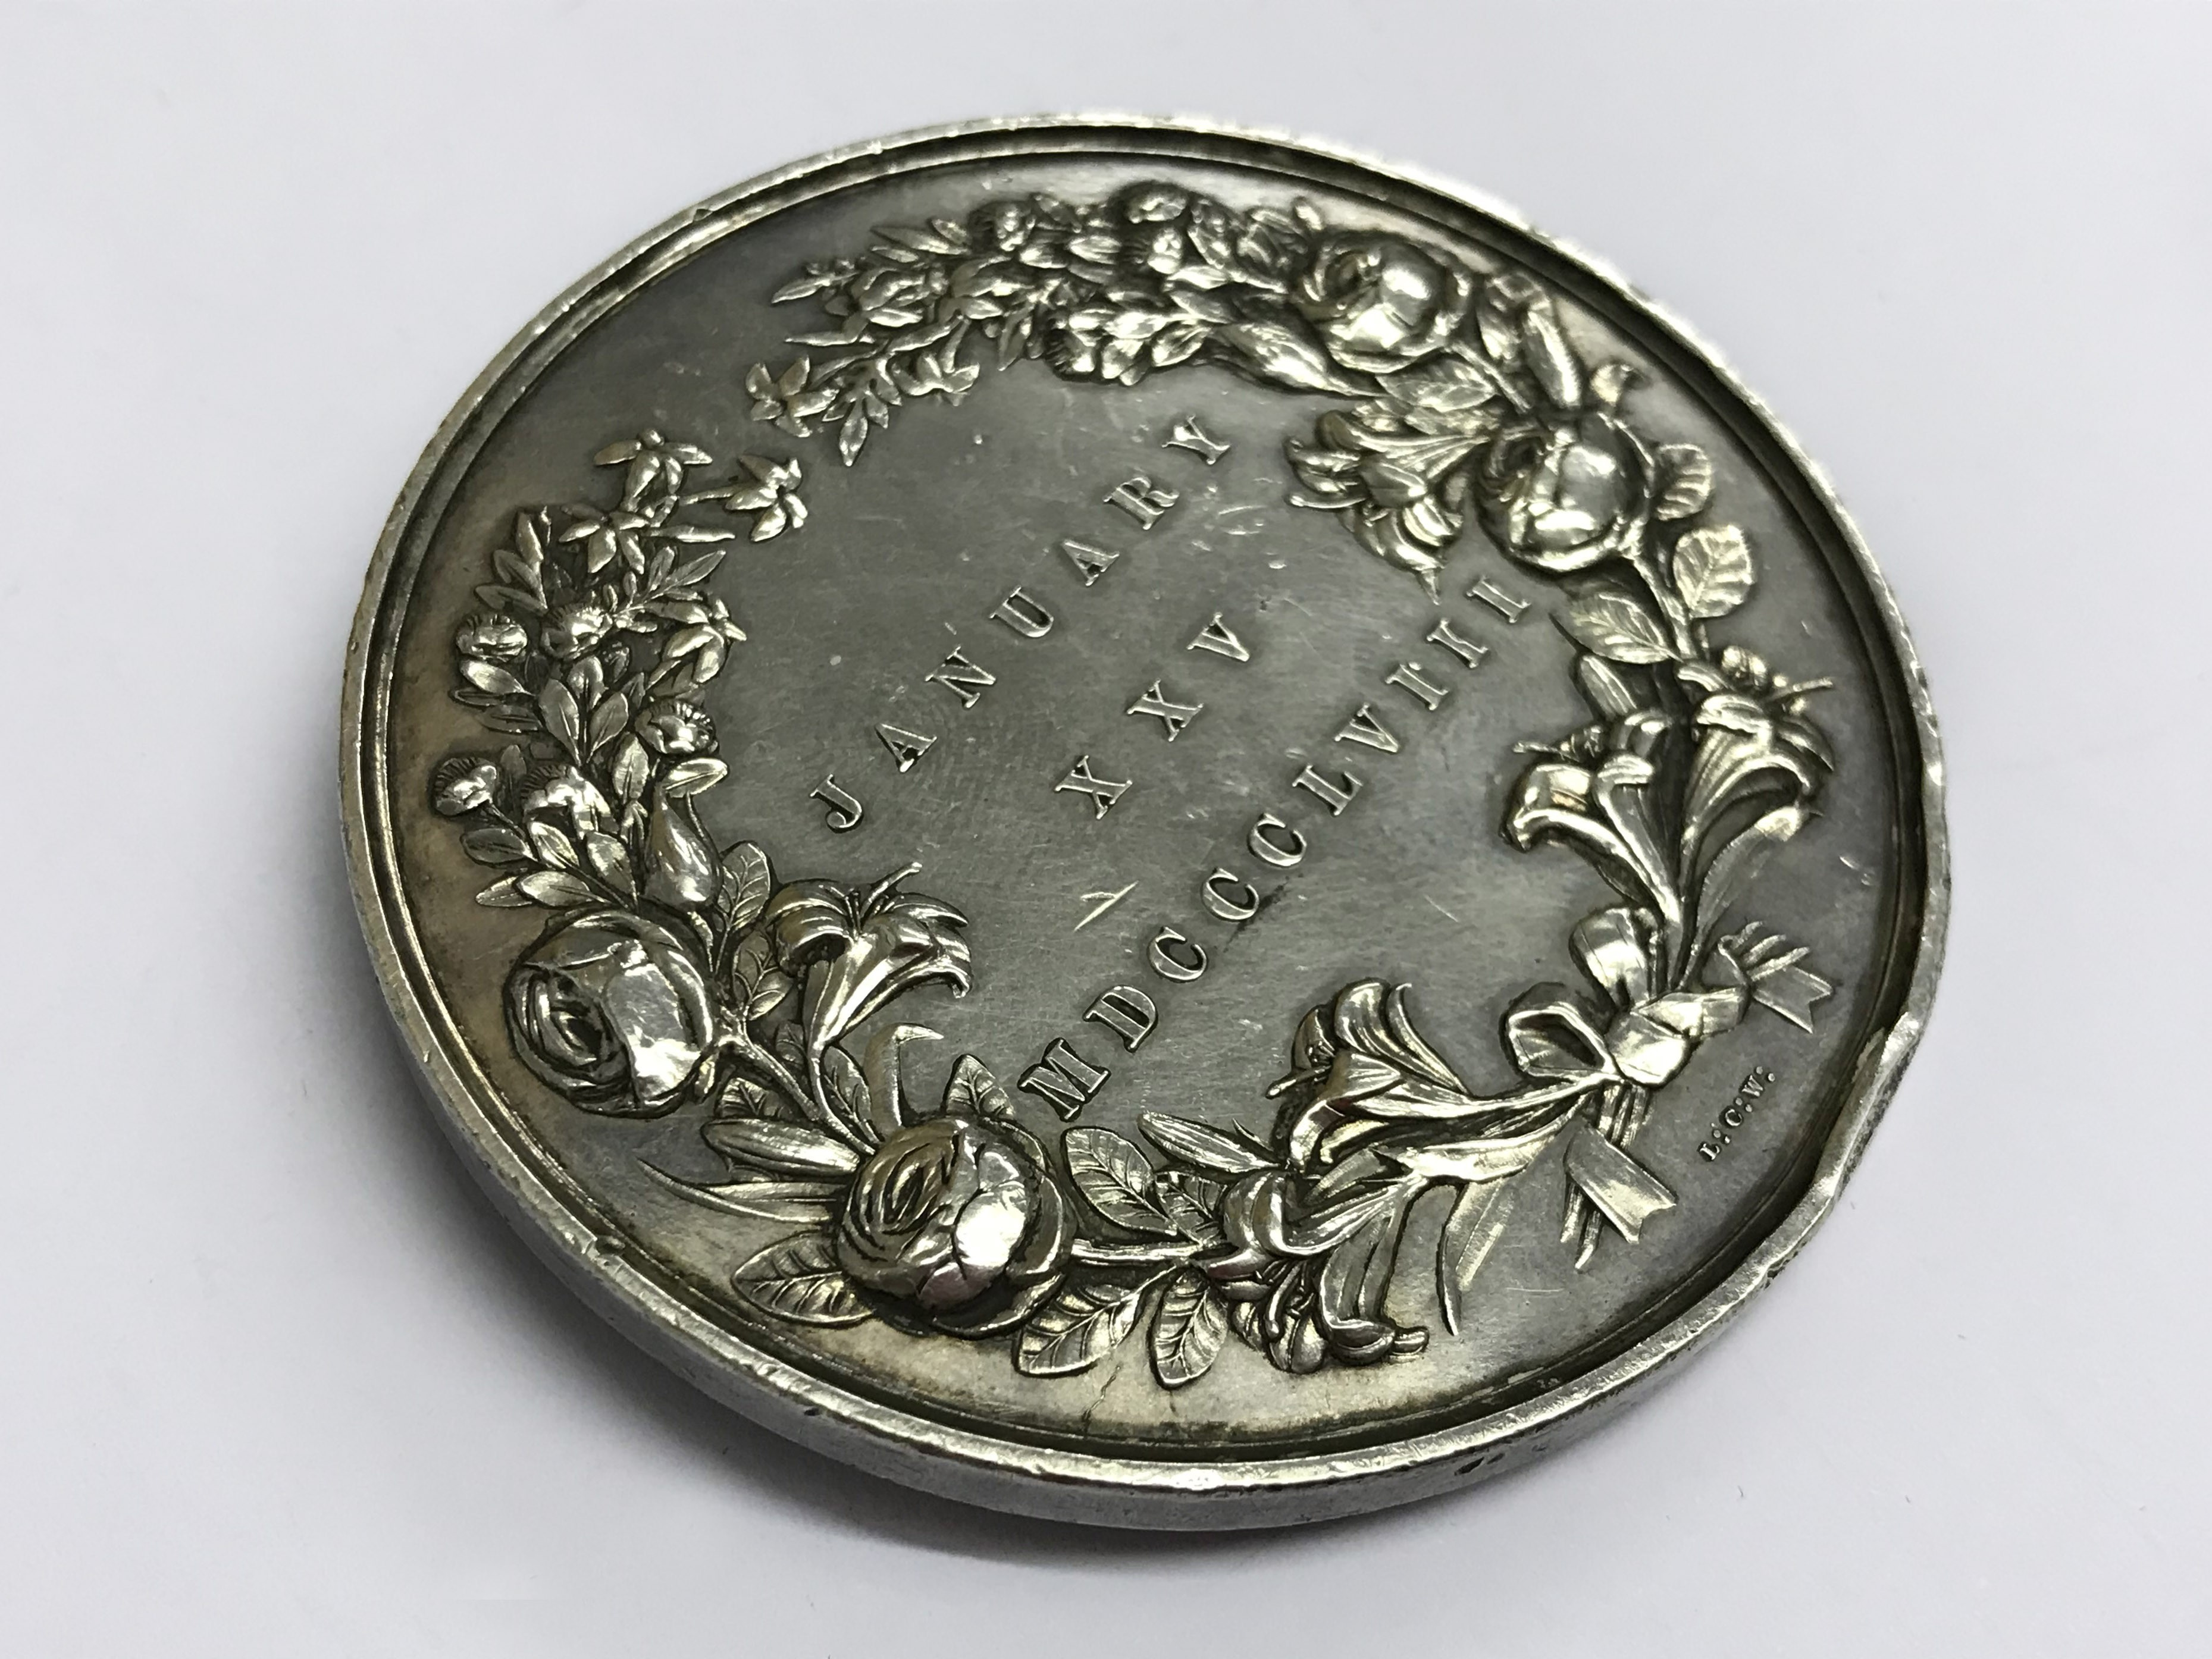 Lot 32 - Medal commemorating the marriage of the Princess Royal and Prince Frederick William of Prussia 1858